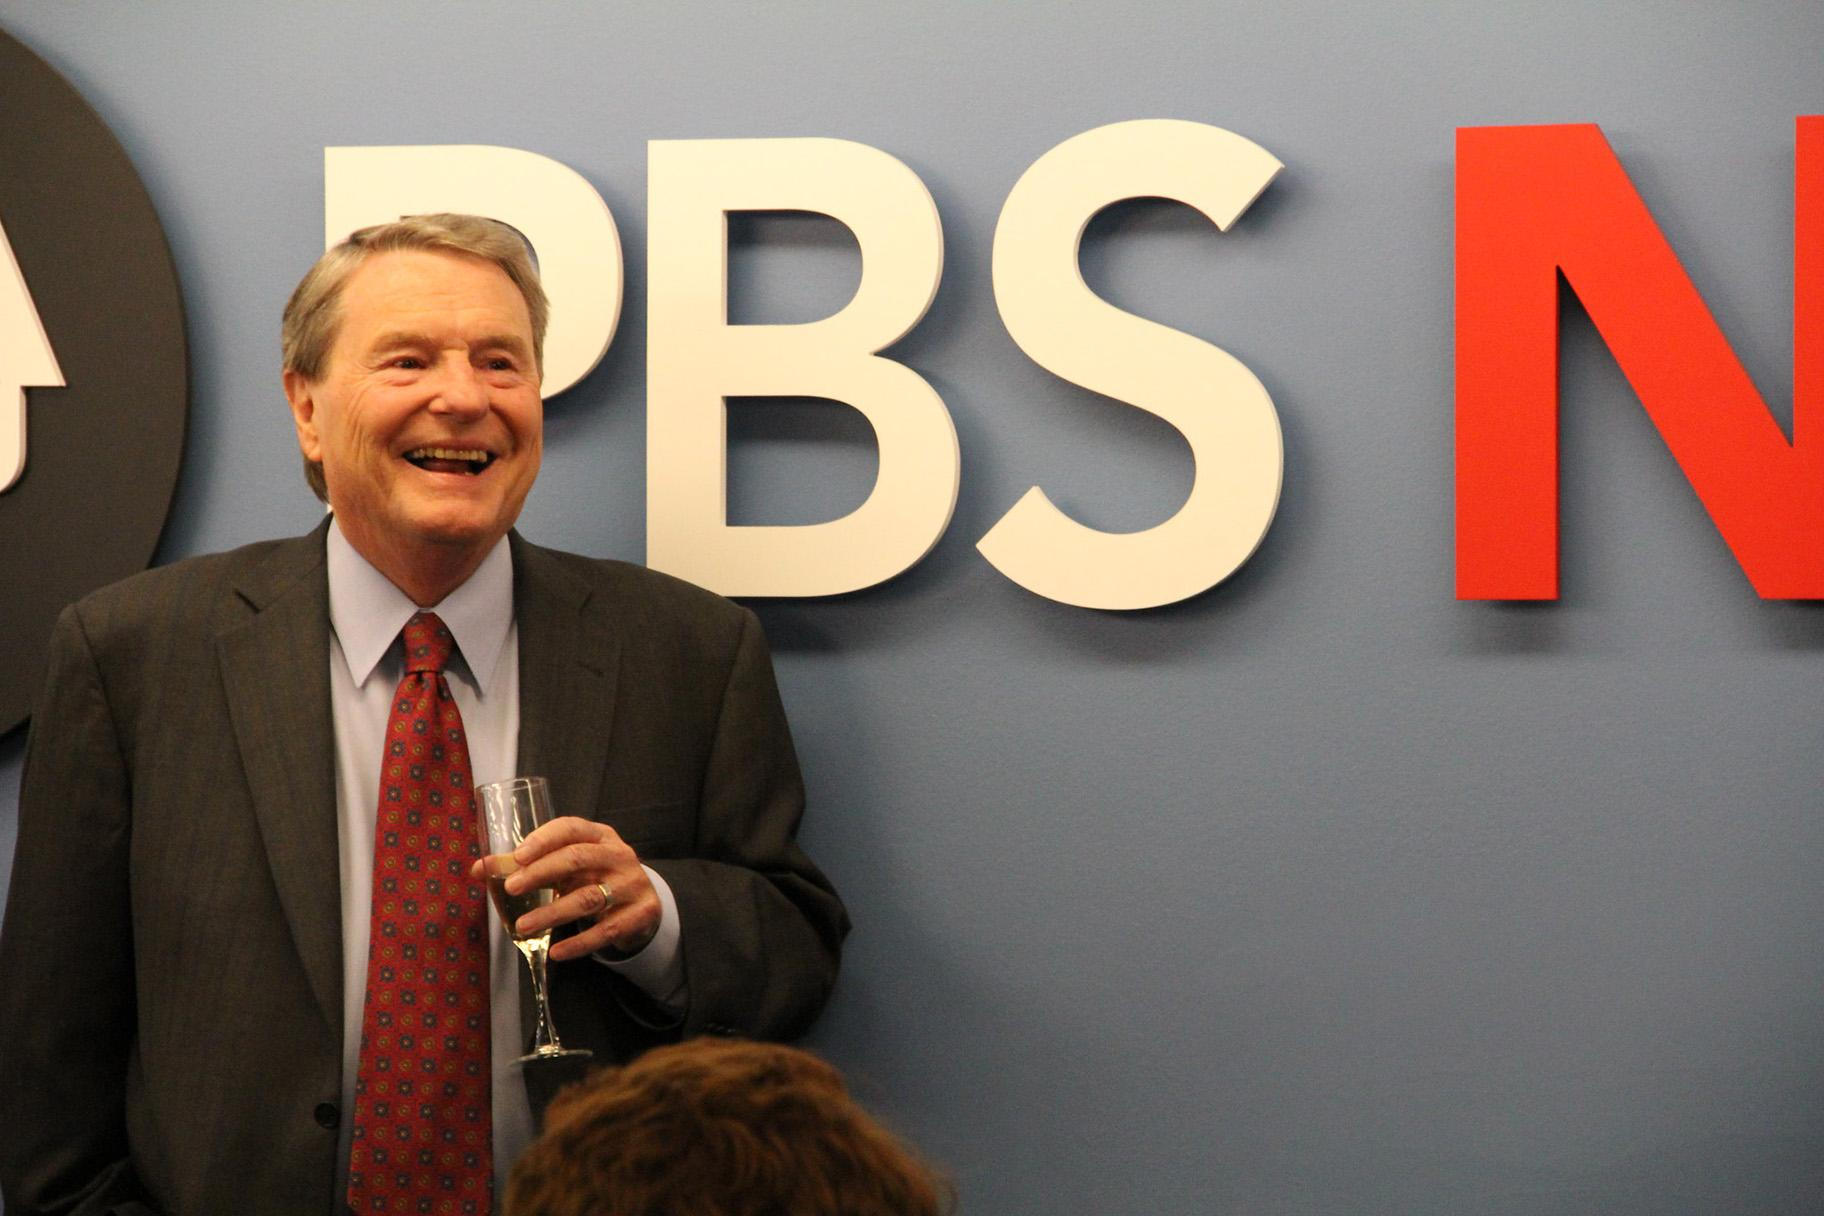 Jim Lehrer's retirement announcement in 2011. (PBS NewsHour / Flickr)